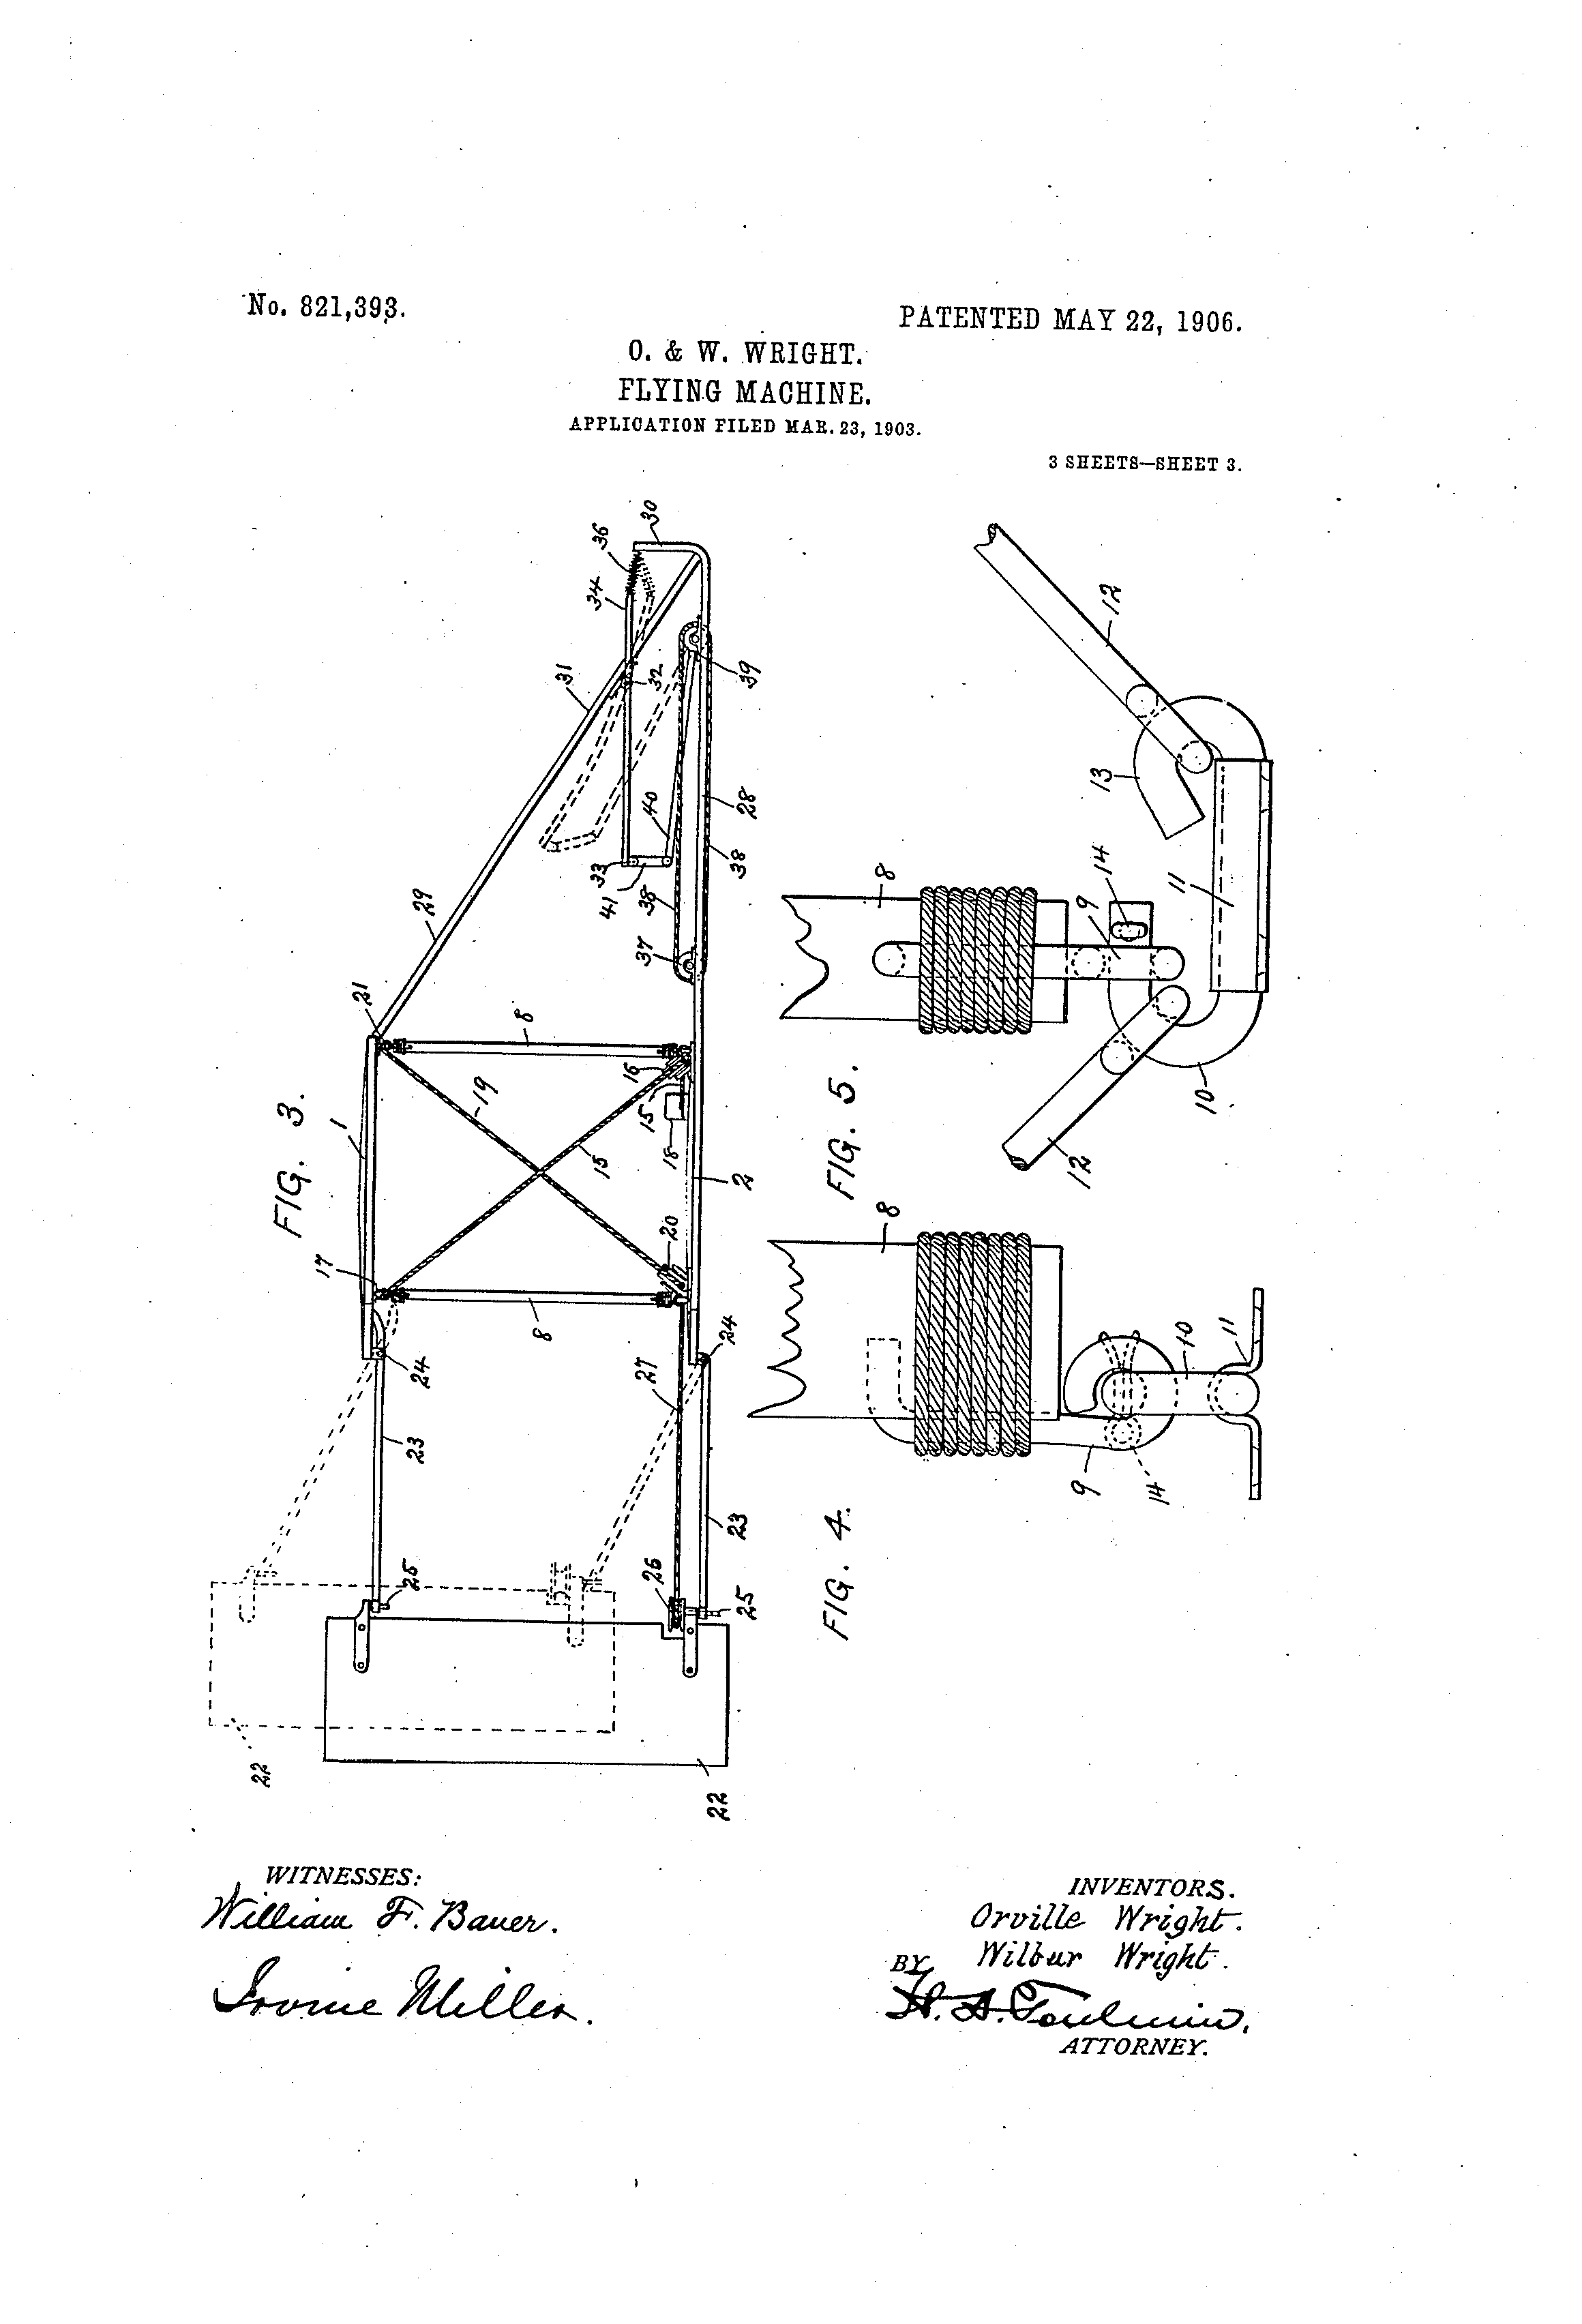 Page 3 of drawings for Wright Brothers patent of a flying machine